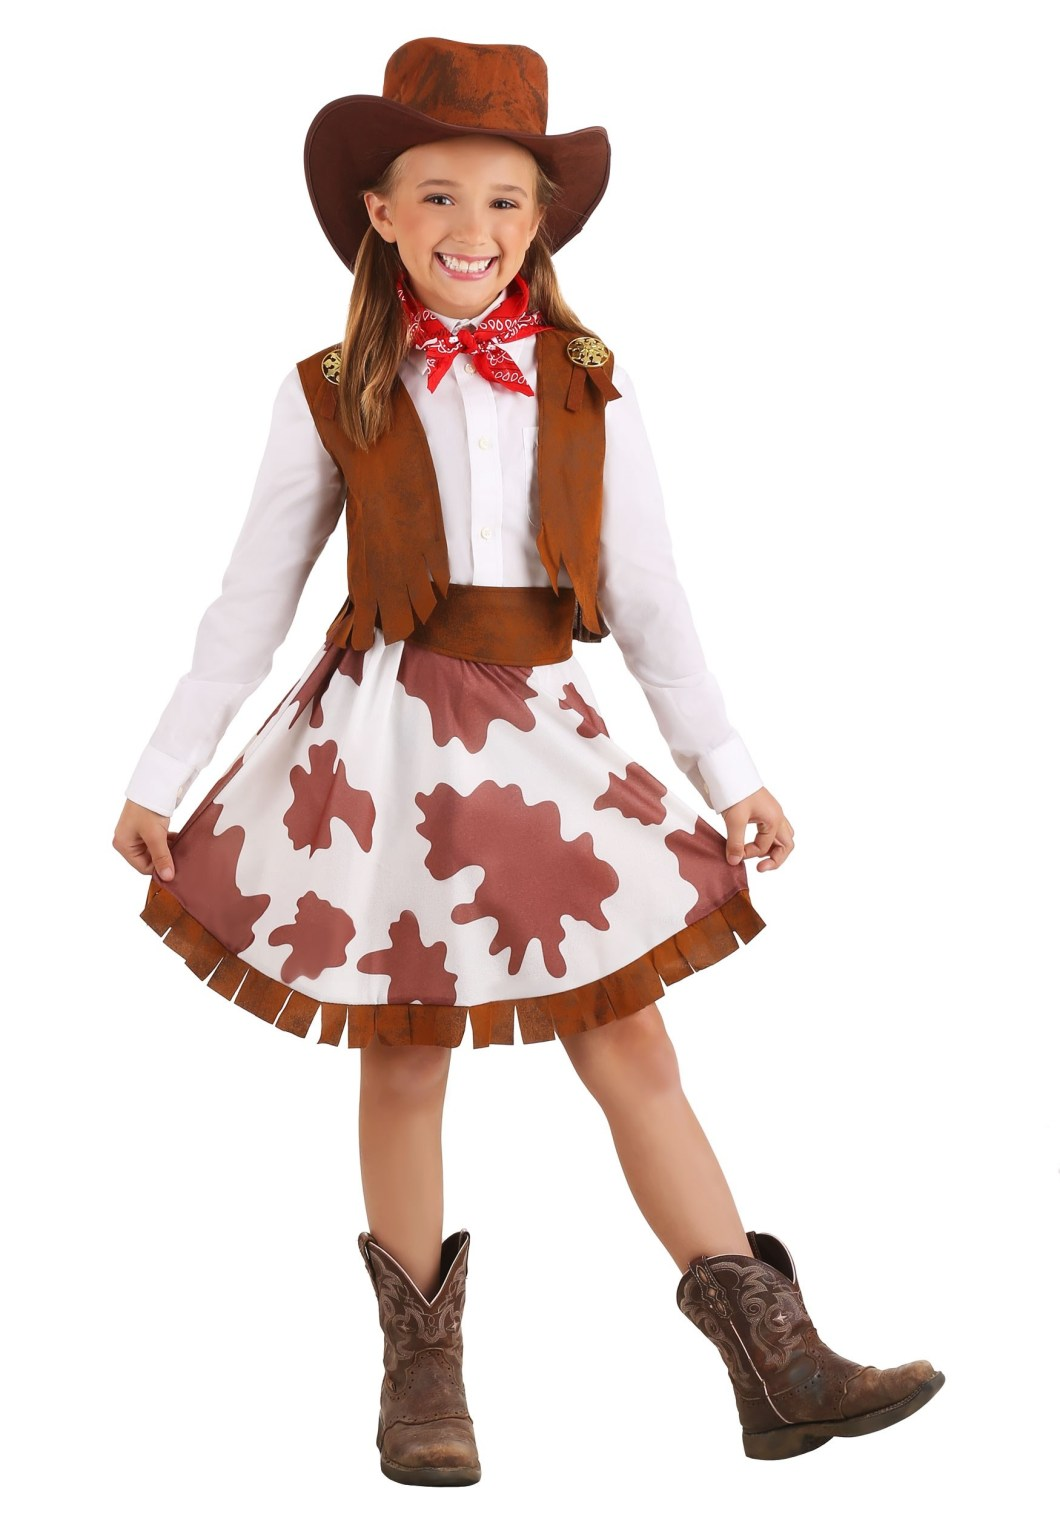 cowgirl halloween costumes for tweens | cartooncreative.co